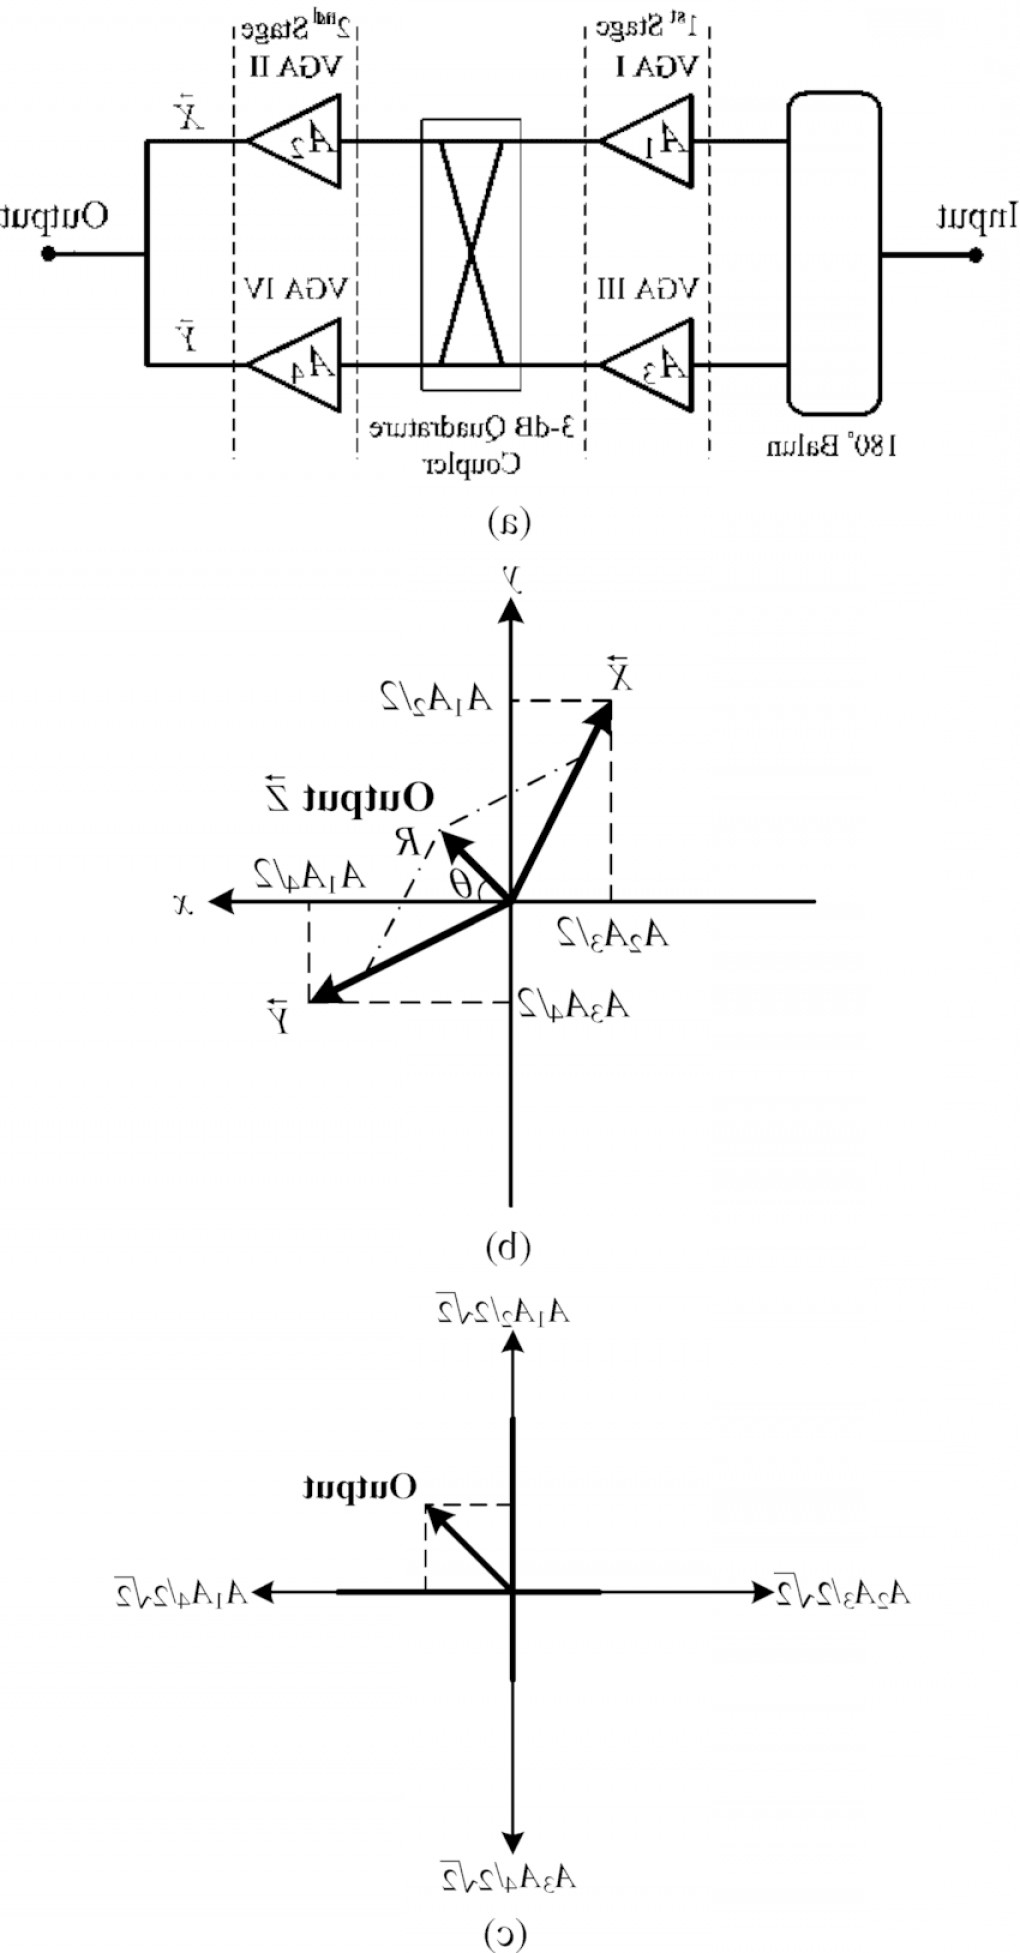 Transformer Vector Diagrams: A Architecture And B Vector Diagram At The Output Of Second Stage Vgas Of A Cartesianfig